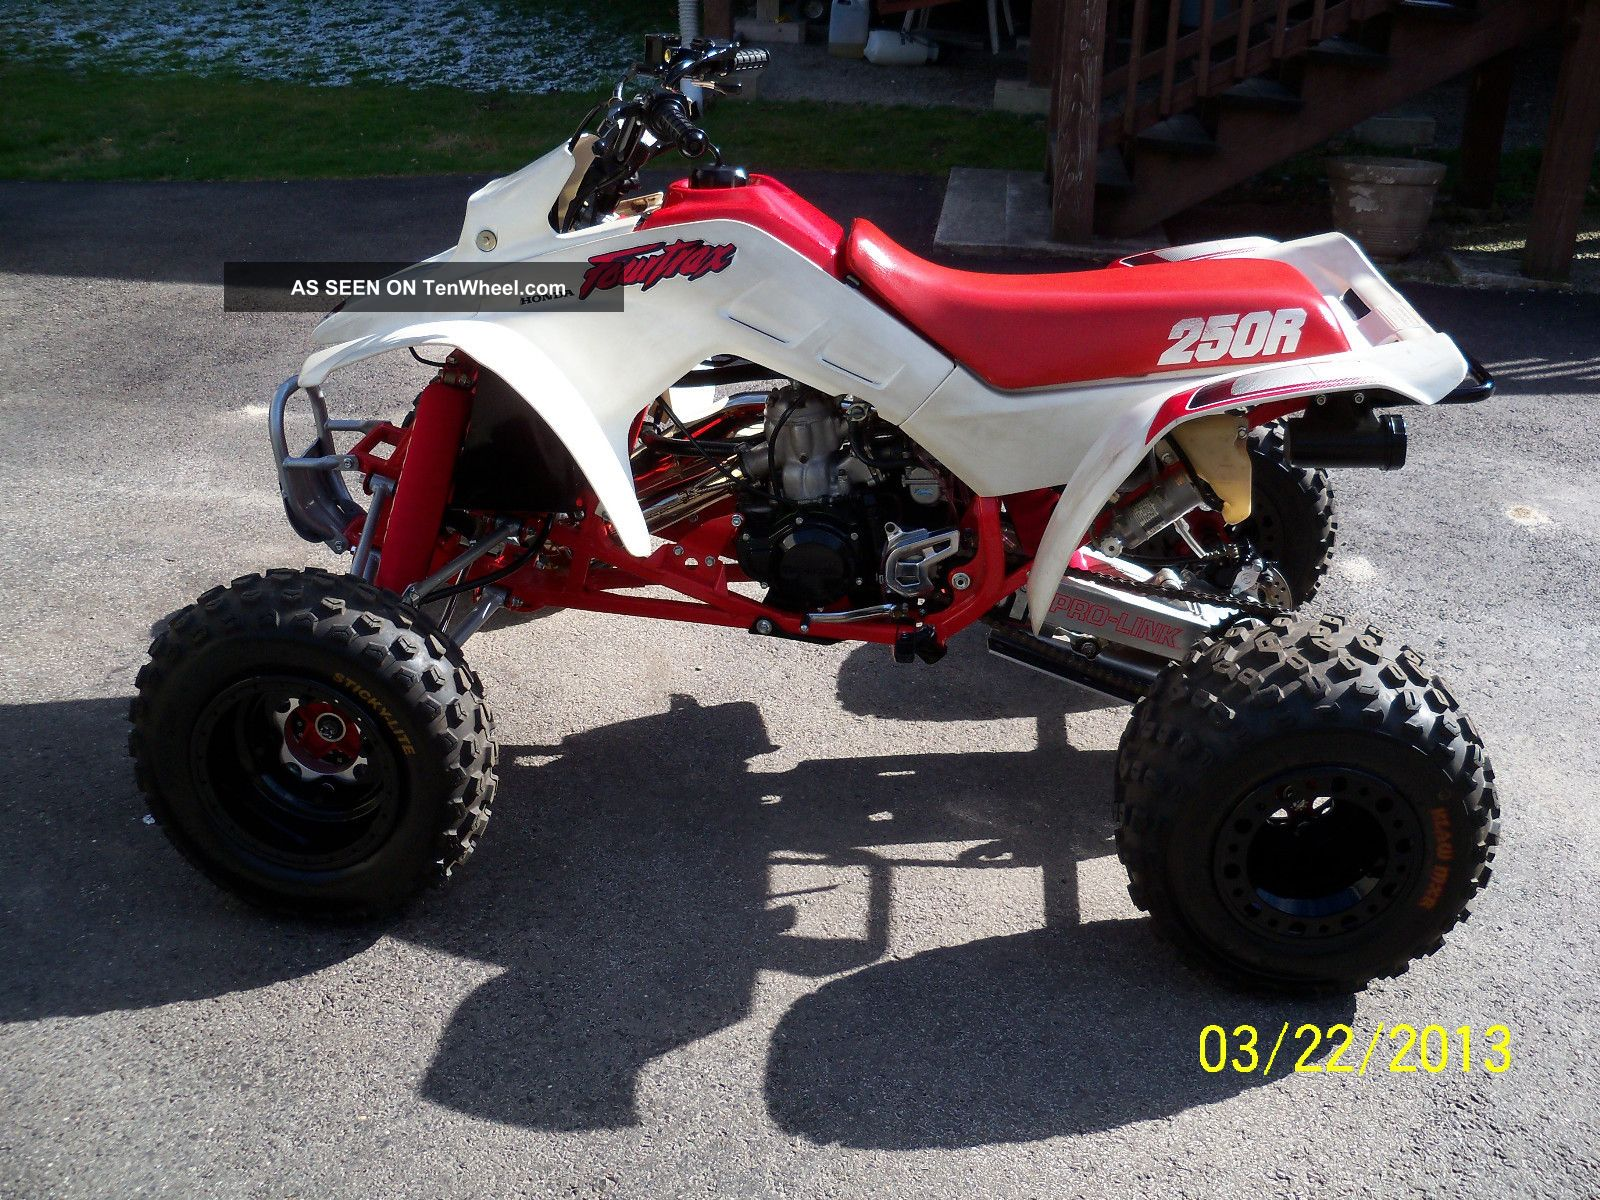 Project Rebuild A Facelift For The Legendary Honda 250r